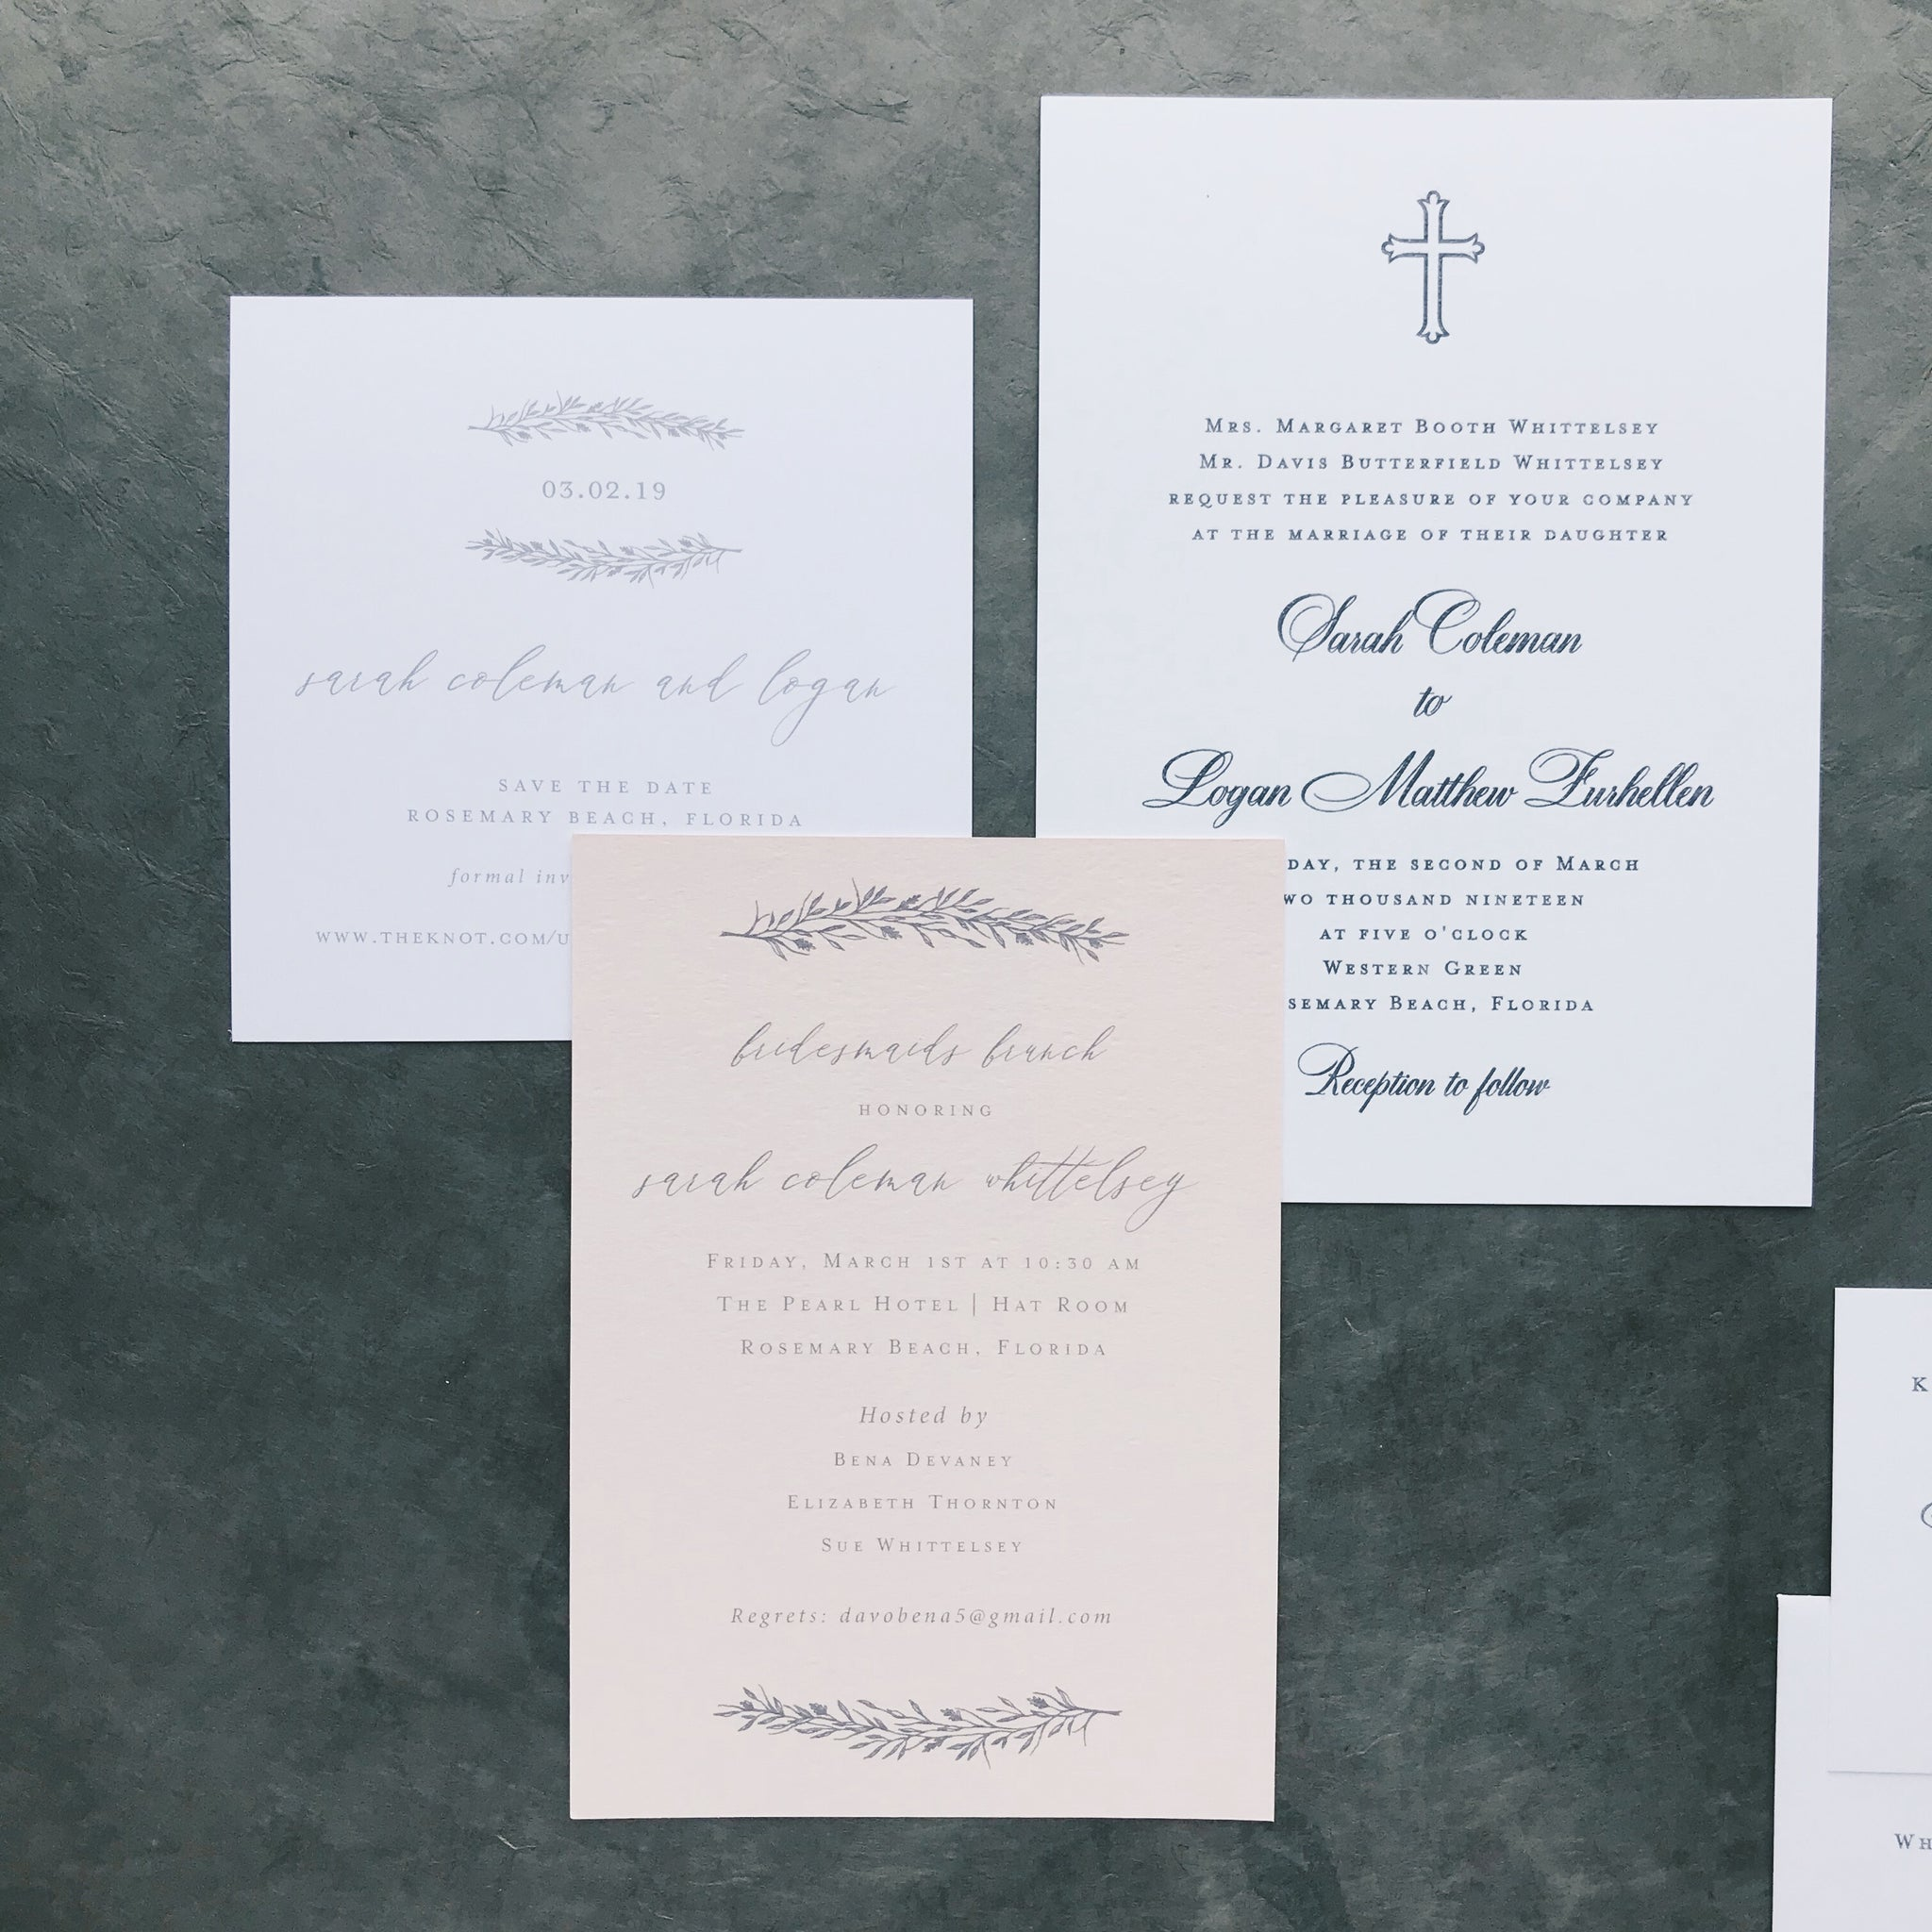 Whittelsey Wedding Invitation - Deposit Listing